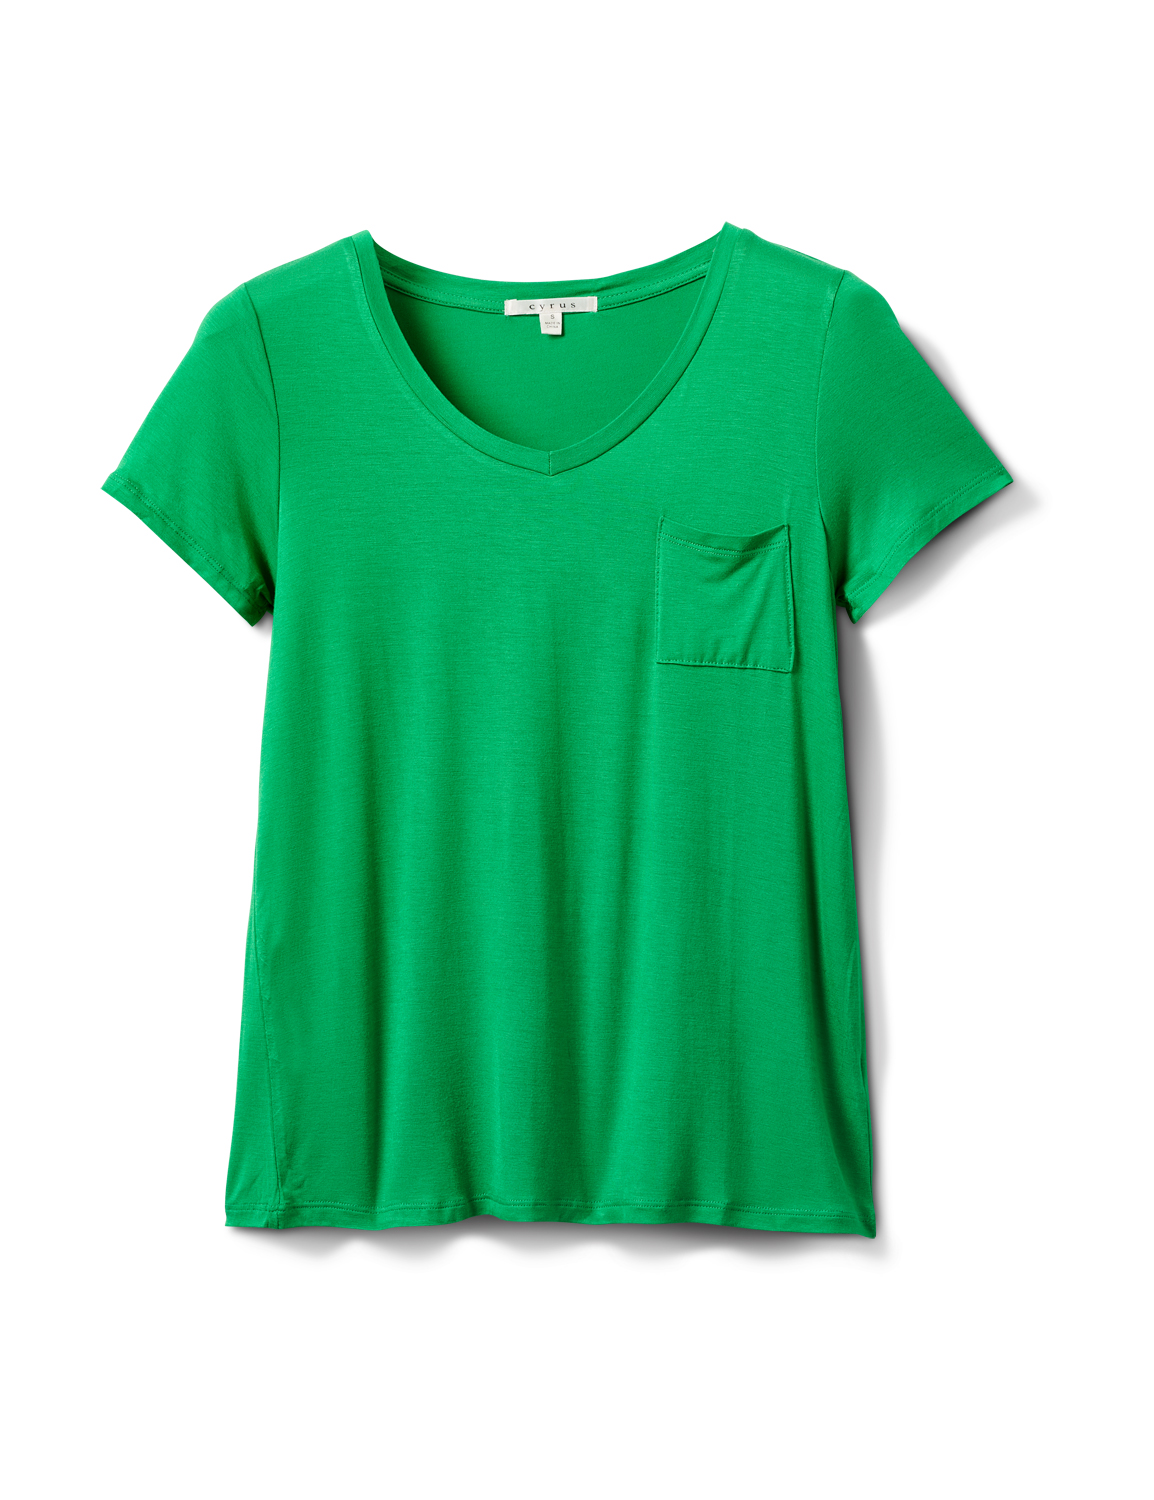 Rayon Span V-Neck Tee -Kelly Green - Front